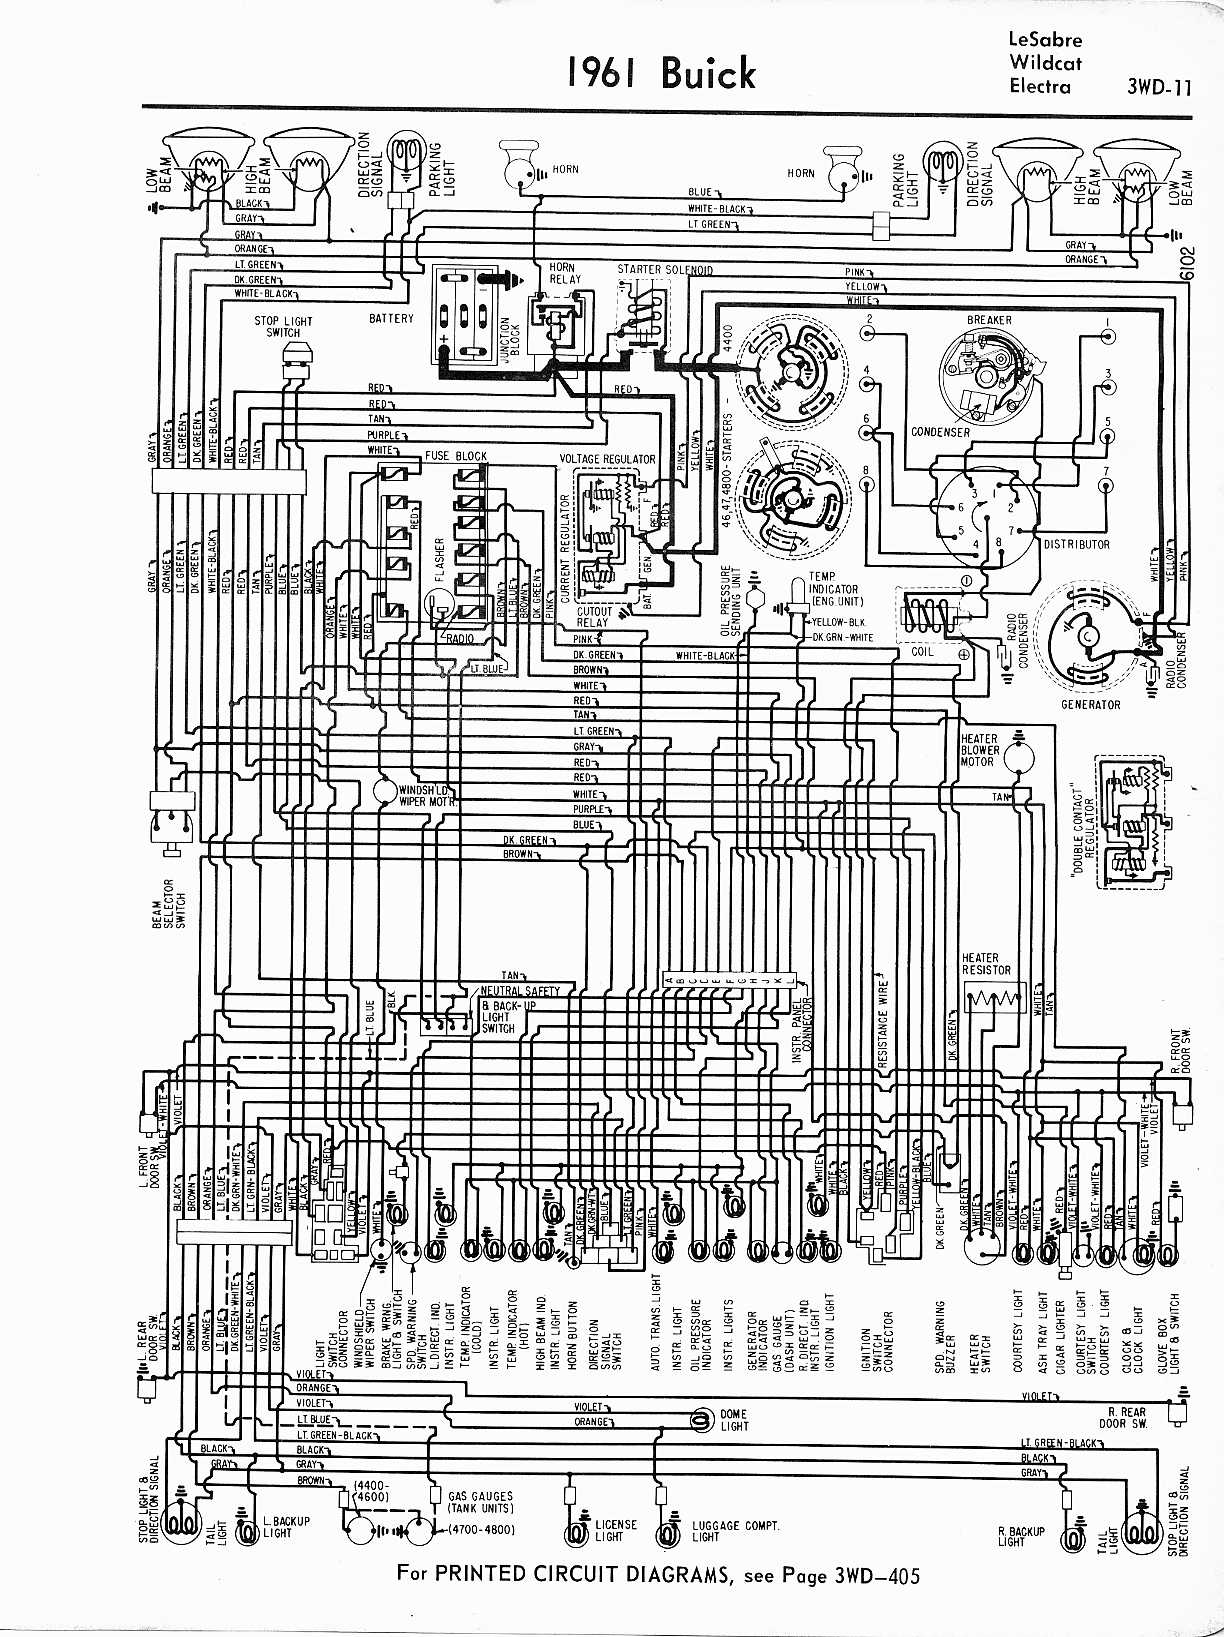 2000 buick lesabre parts diagram family life cycle wiring for 1996 park ave 1987